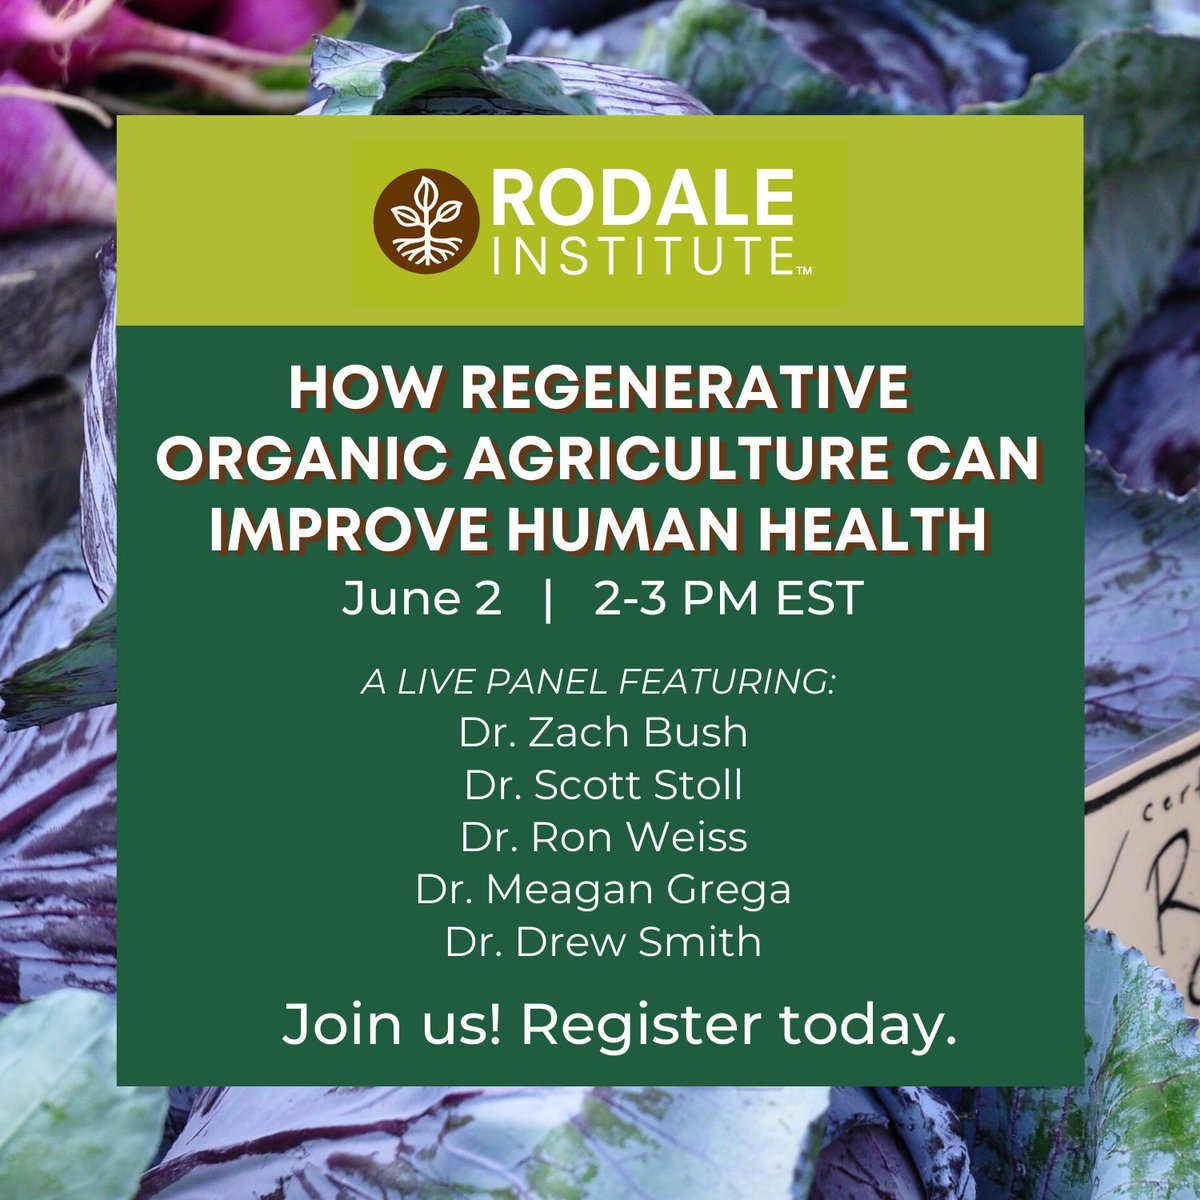 Its finally here! Join us TOMORROW to dive into our newest white paper (rodaleinstitute.org/education/reso…) alongside a panel of medical and scientific experts. Register for this free webinar on human #health and #regenerative #organic ag today: rodaleinstitute.org/events/regener…